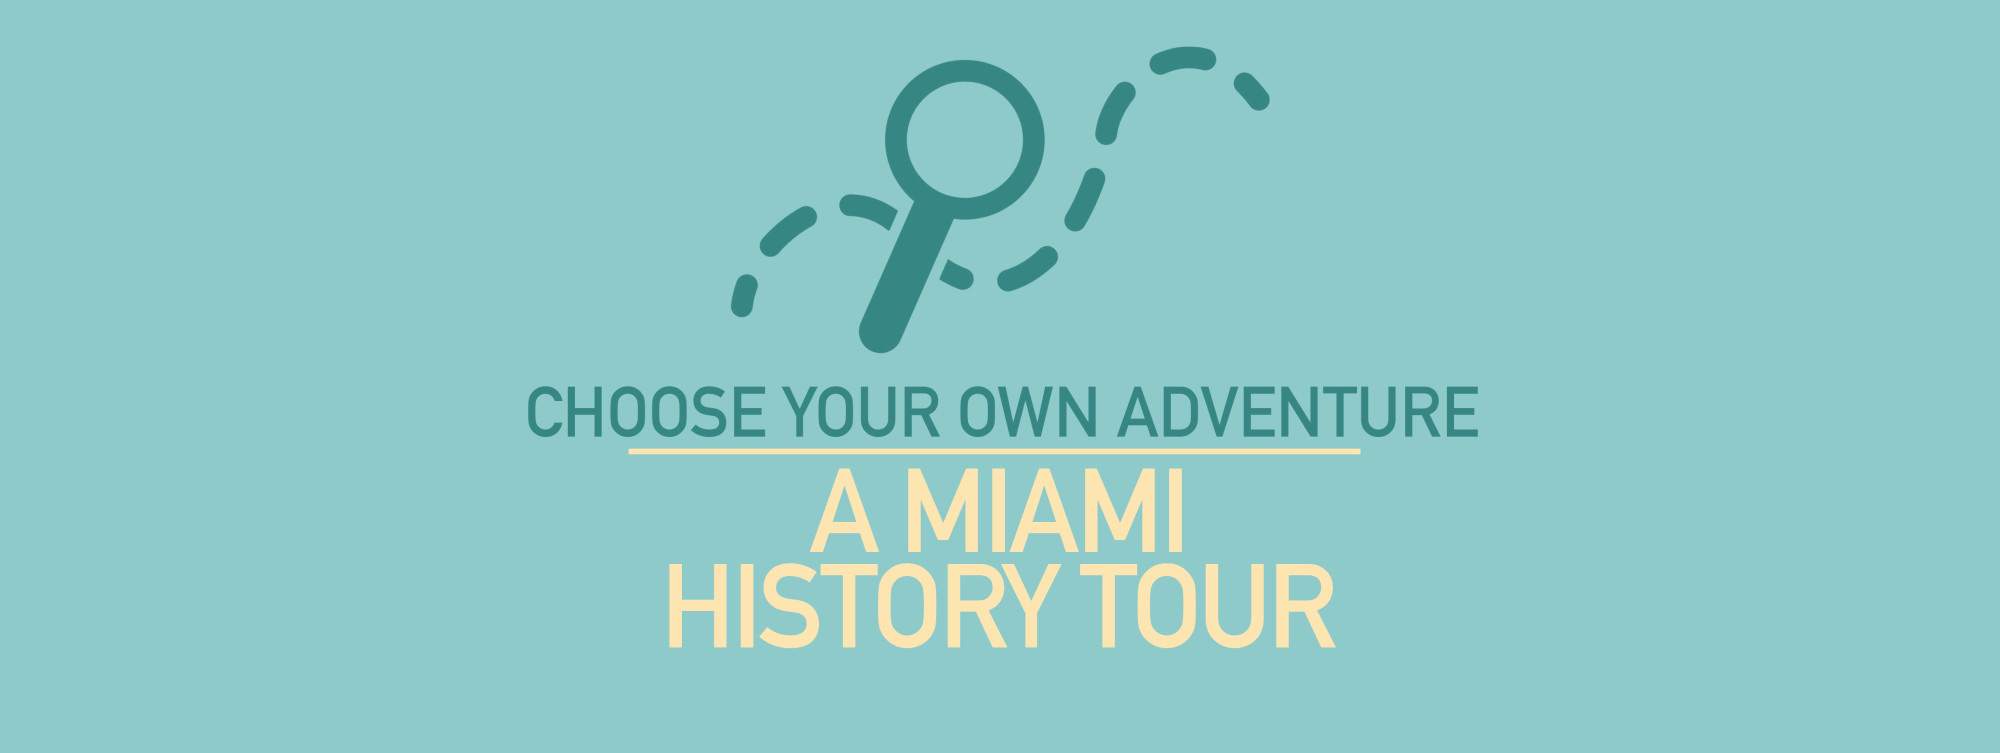 Choose Your Own Adventure A Miami History Tour 2 The